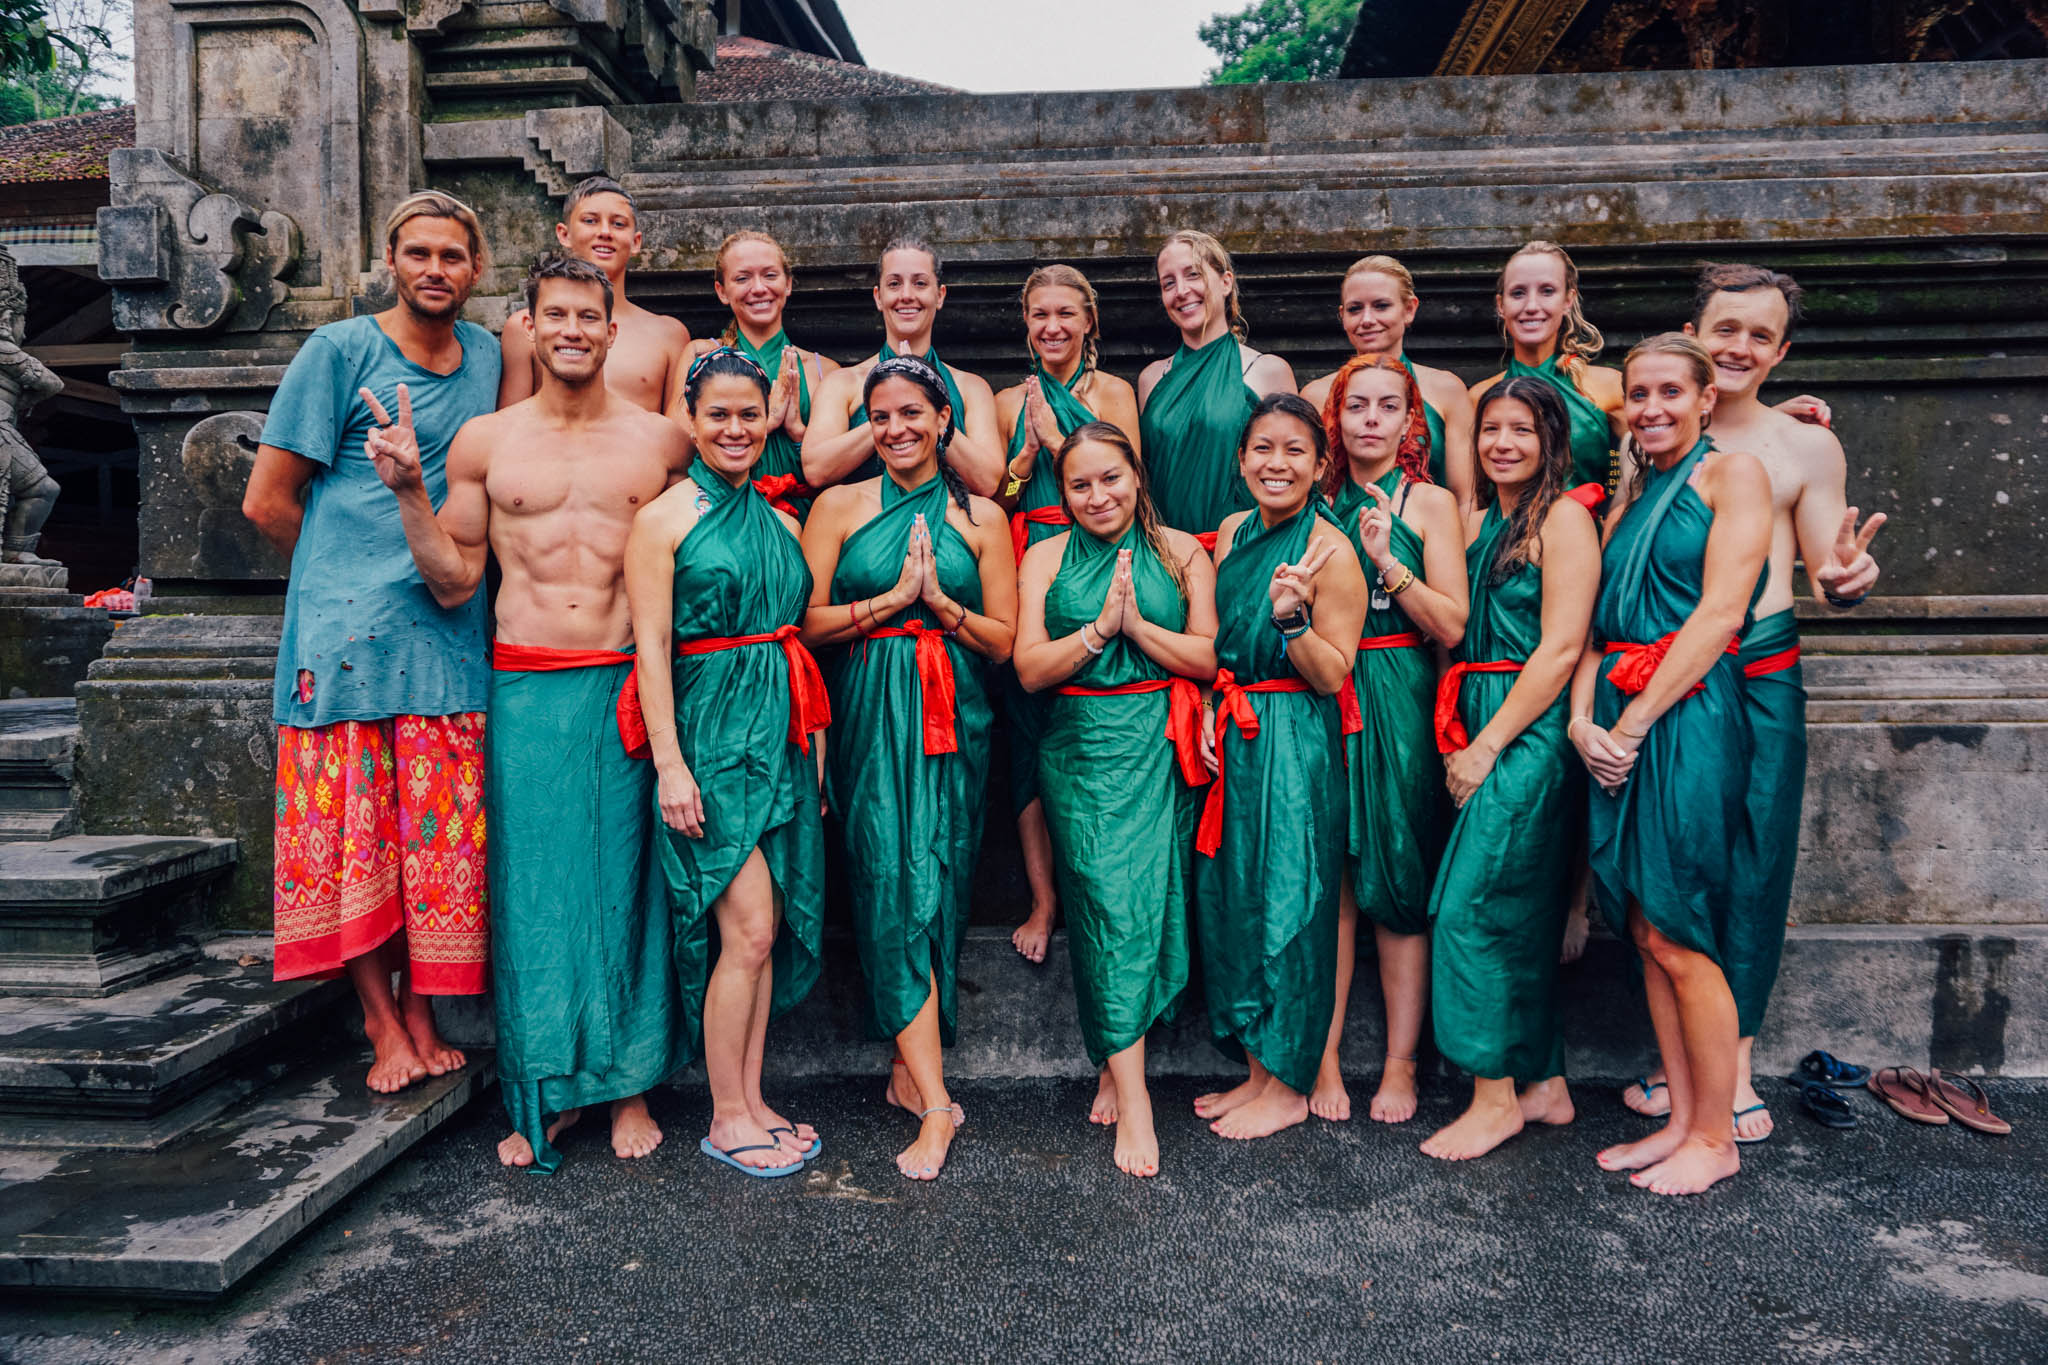 Group photo at The Tirta Empul Holy Water Temple